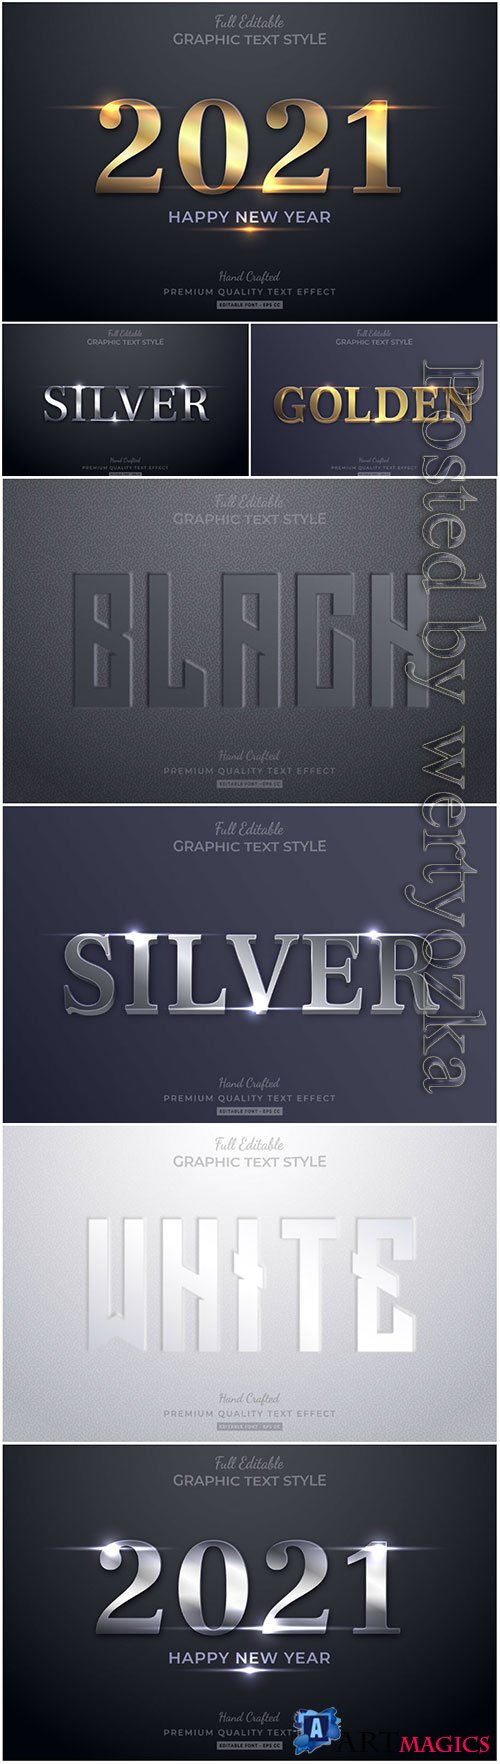 3d editable text style effect vector vol 22